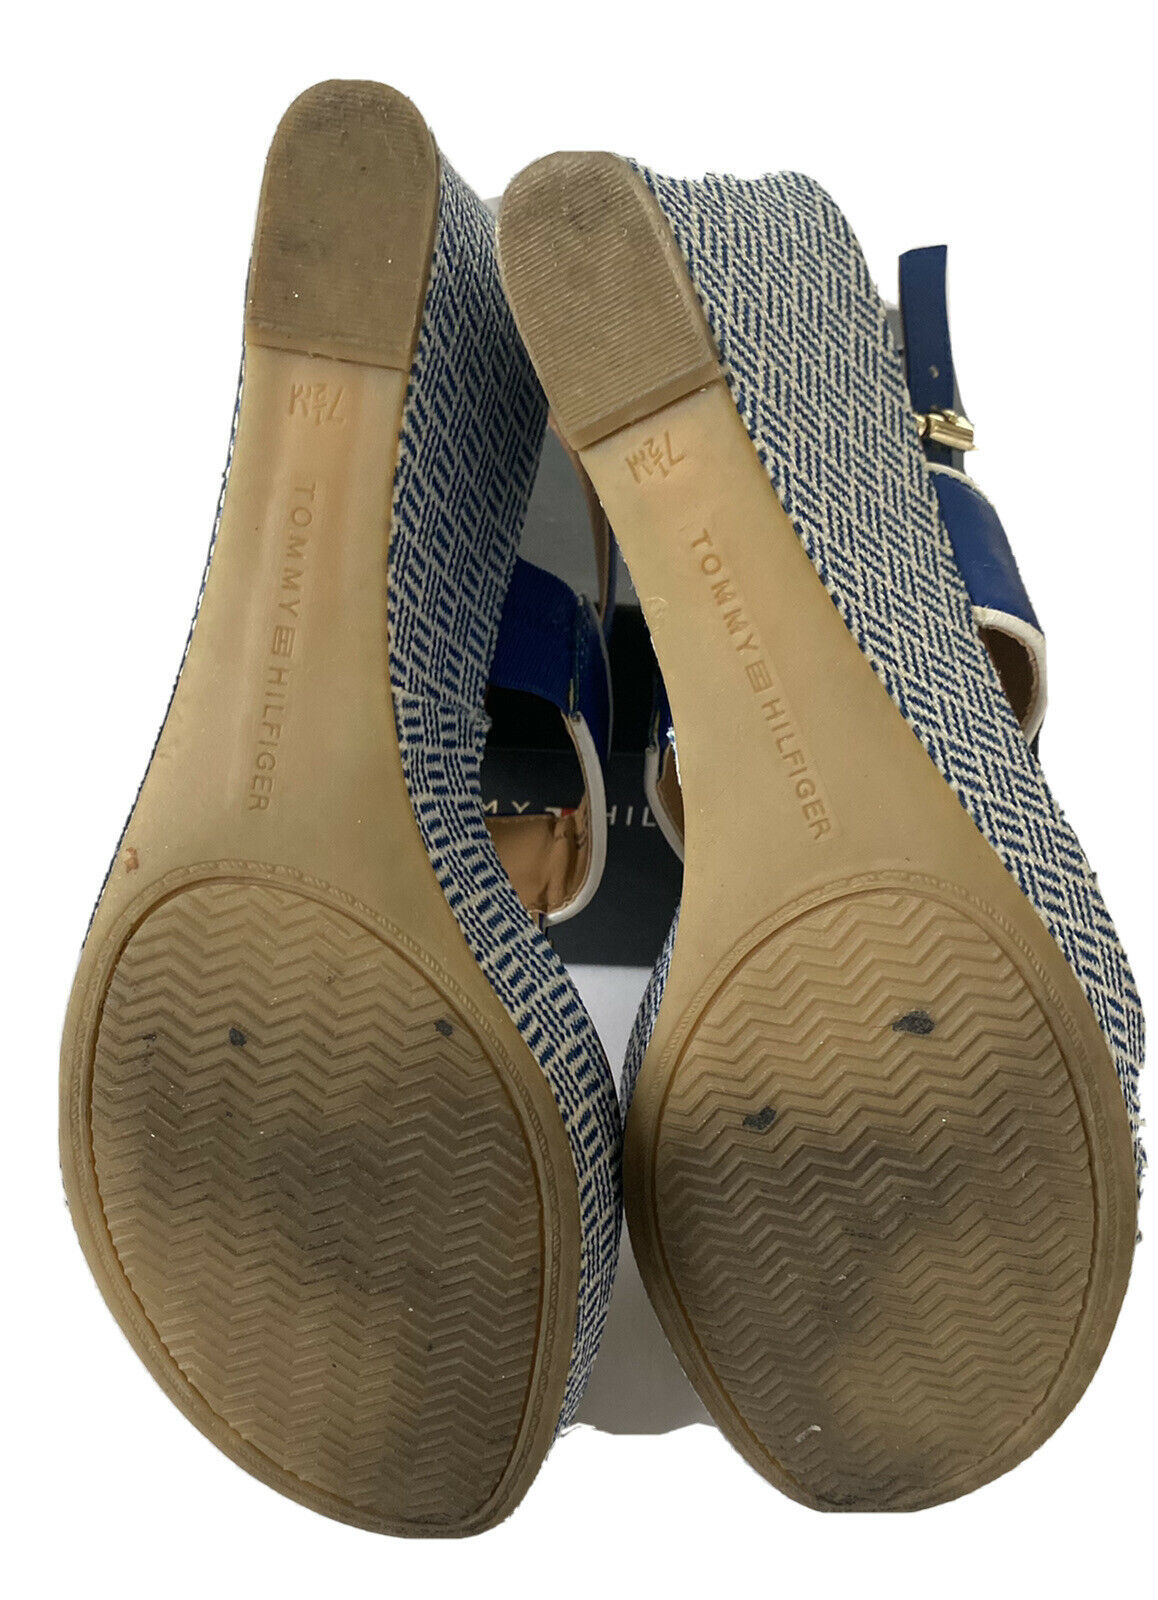 Tommy Hilfiger Women's Size 7.5 M Wedges Navy, - image 4